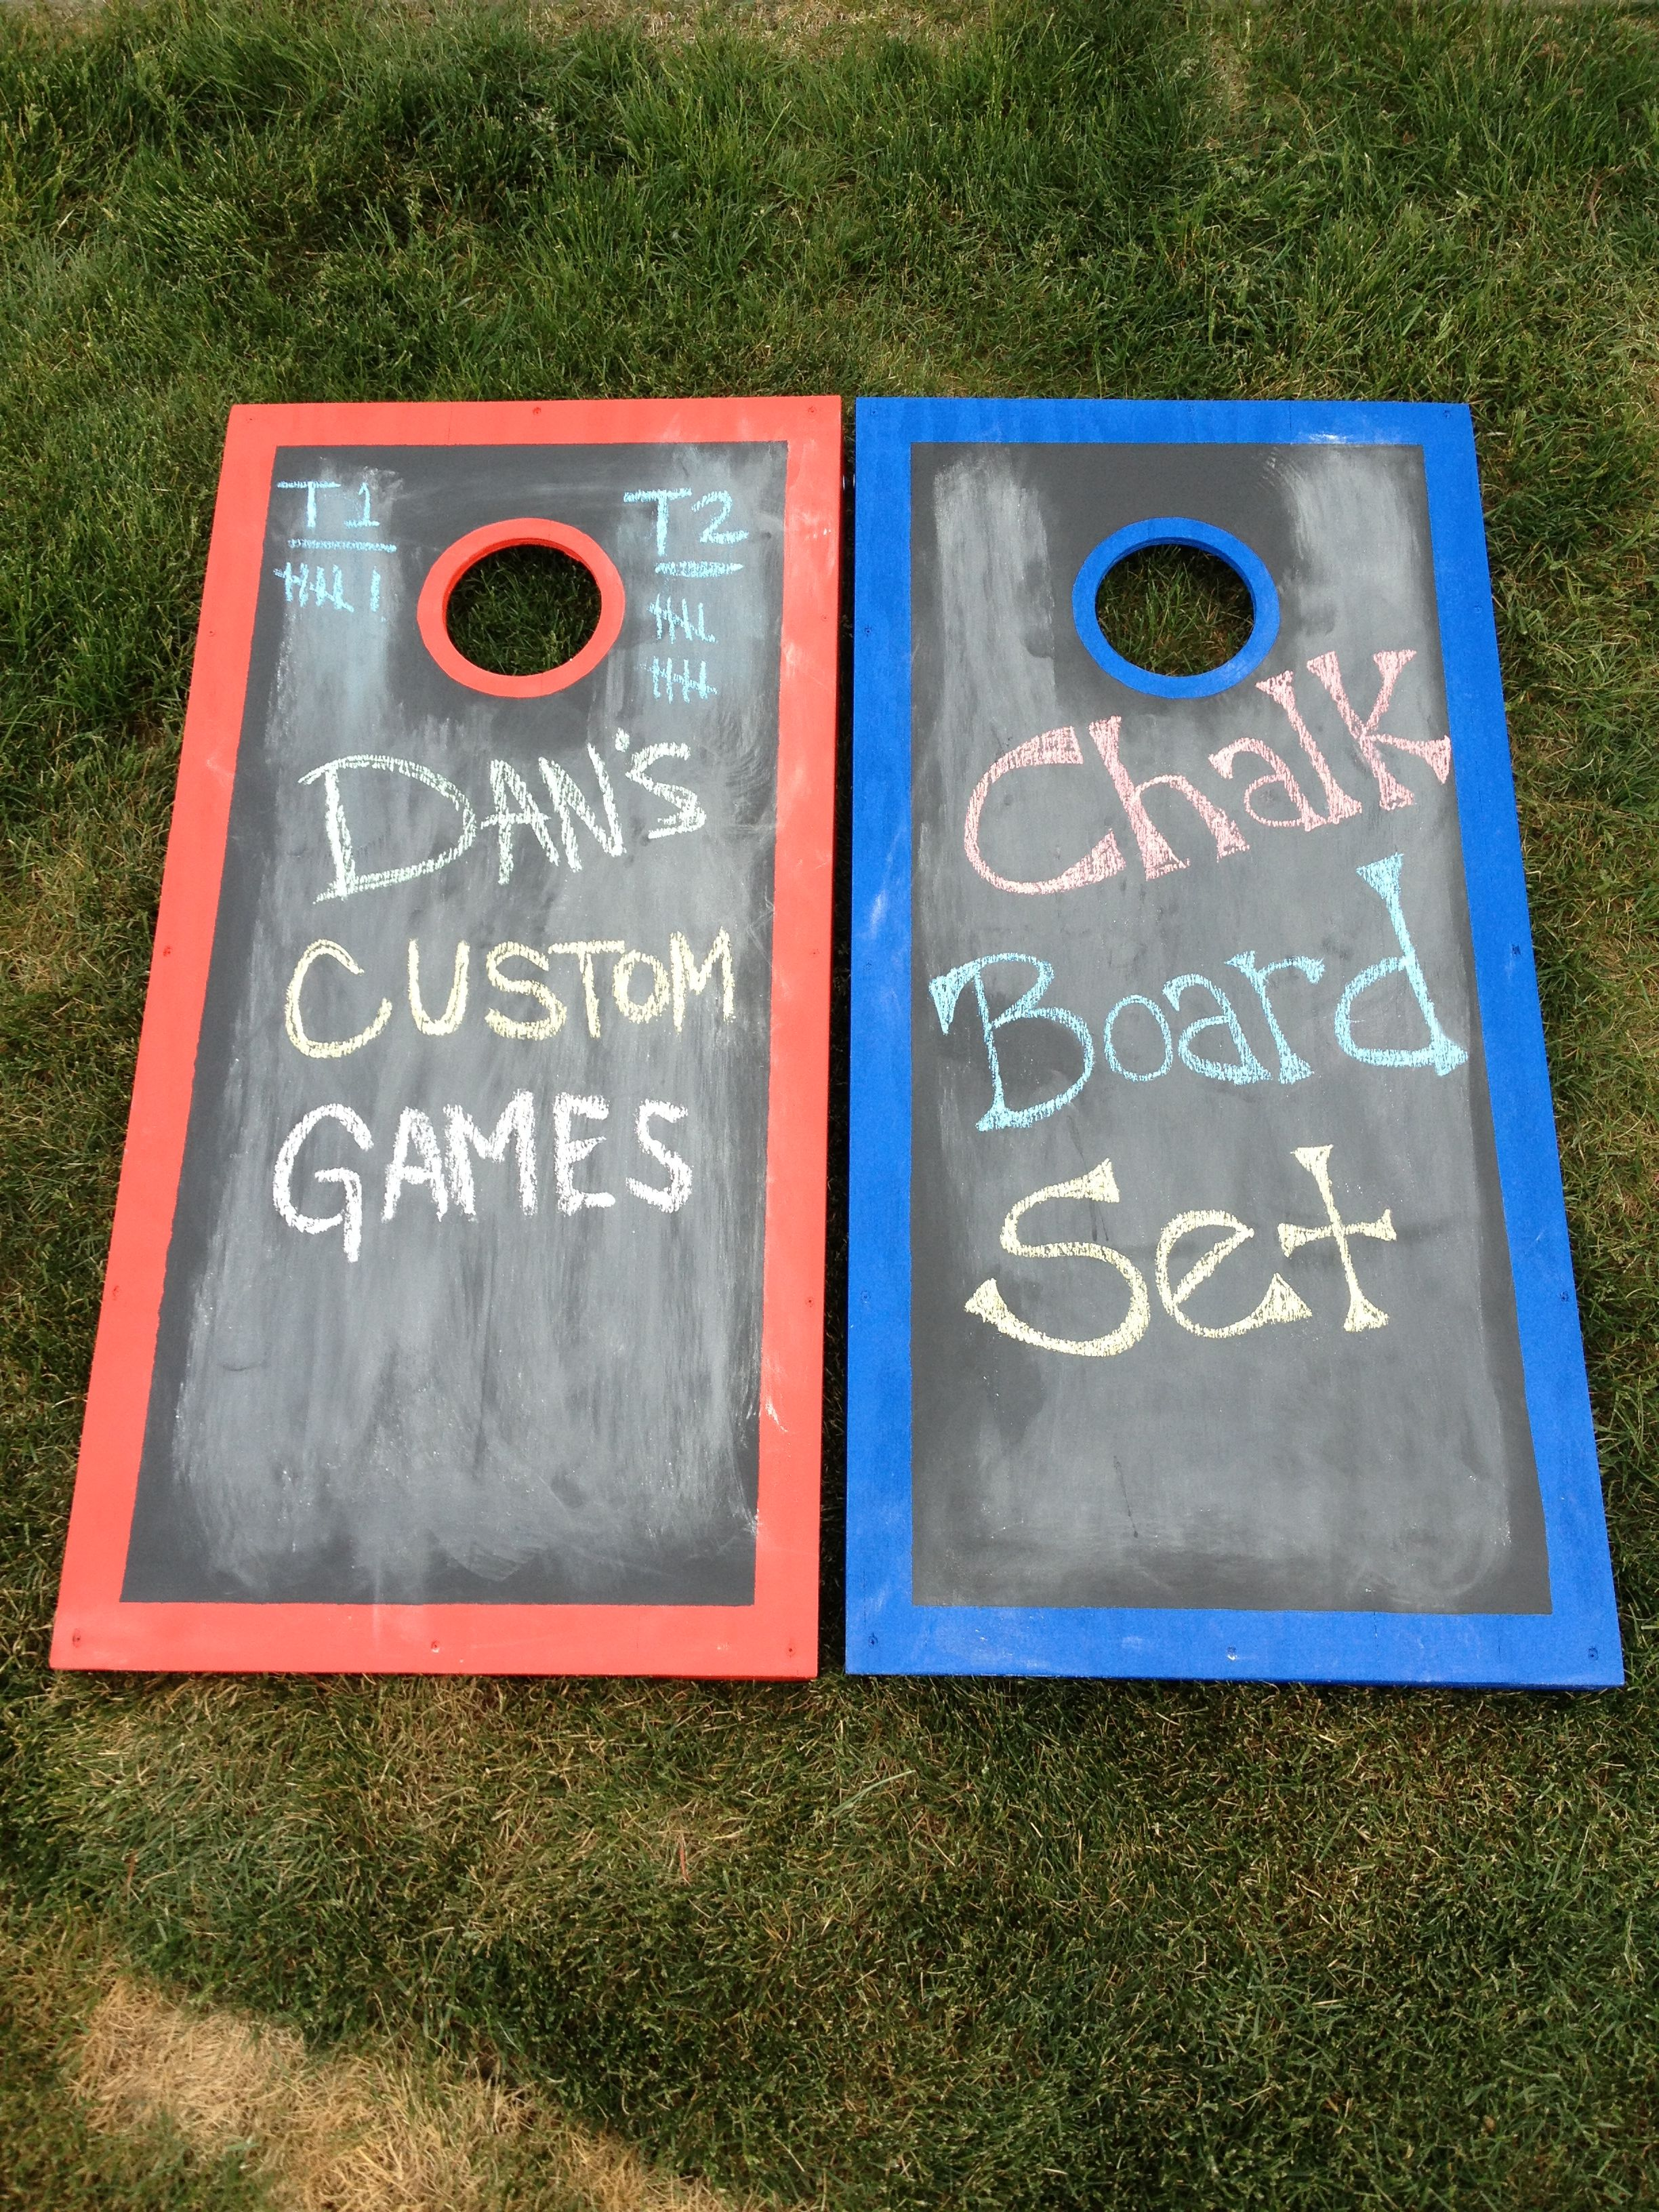 Cornhole Design Ideas cornhole boards so cute could do one red and one blue Draw Your Own Designs Each Round With This Chalk Board Set Www